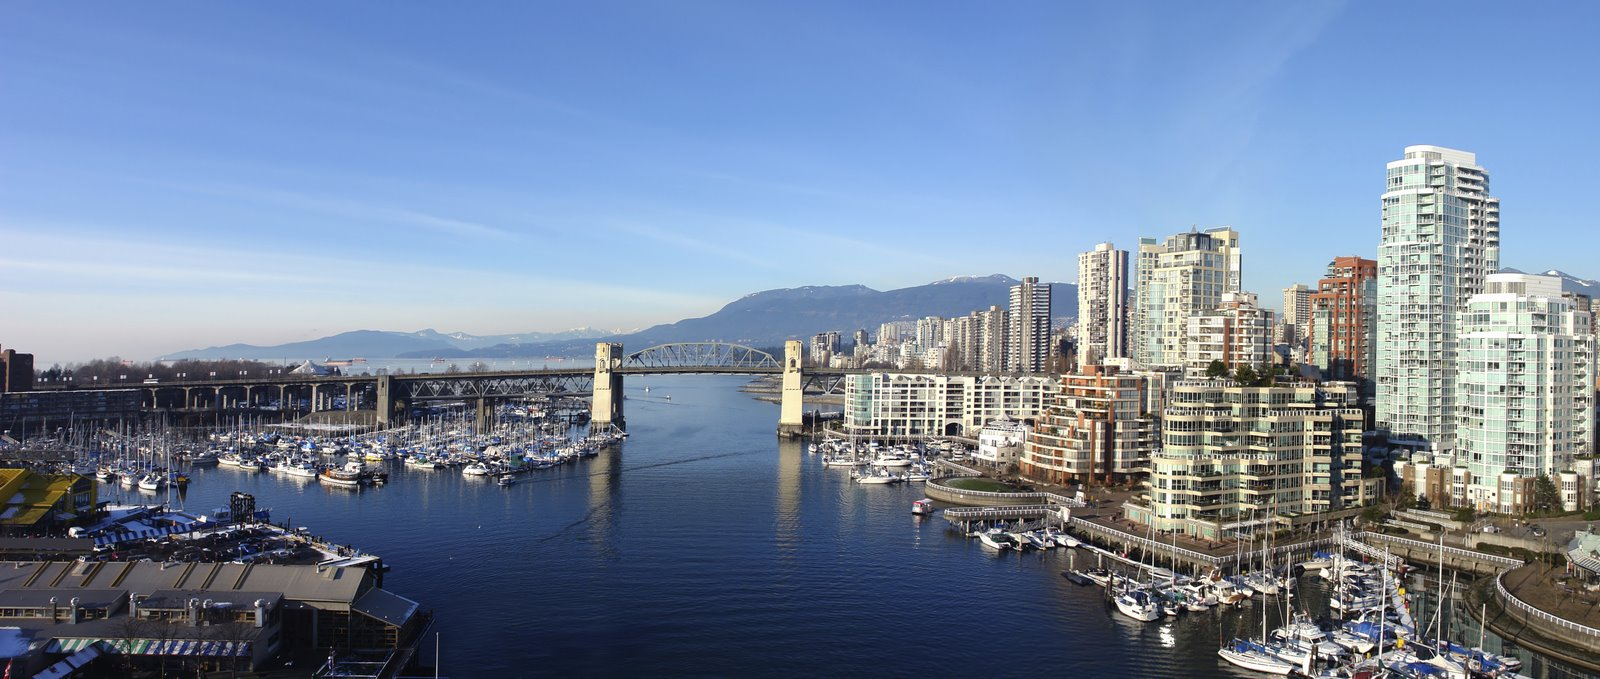 Panoramic image of Vancouver City